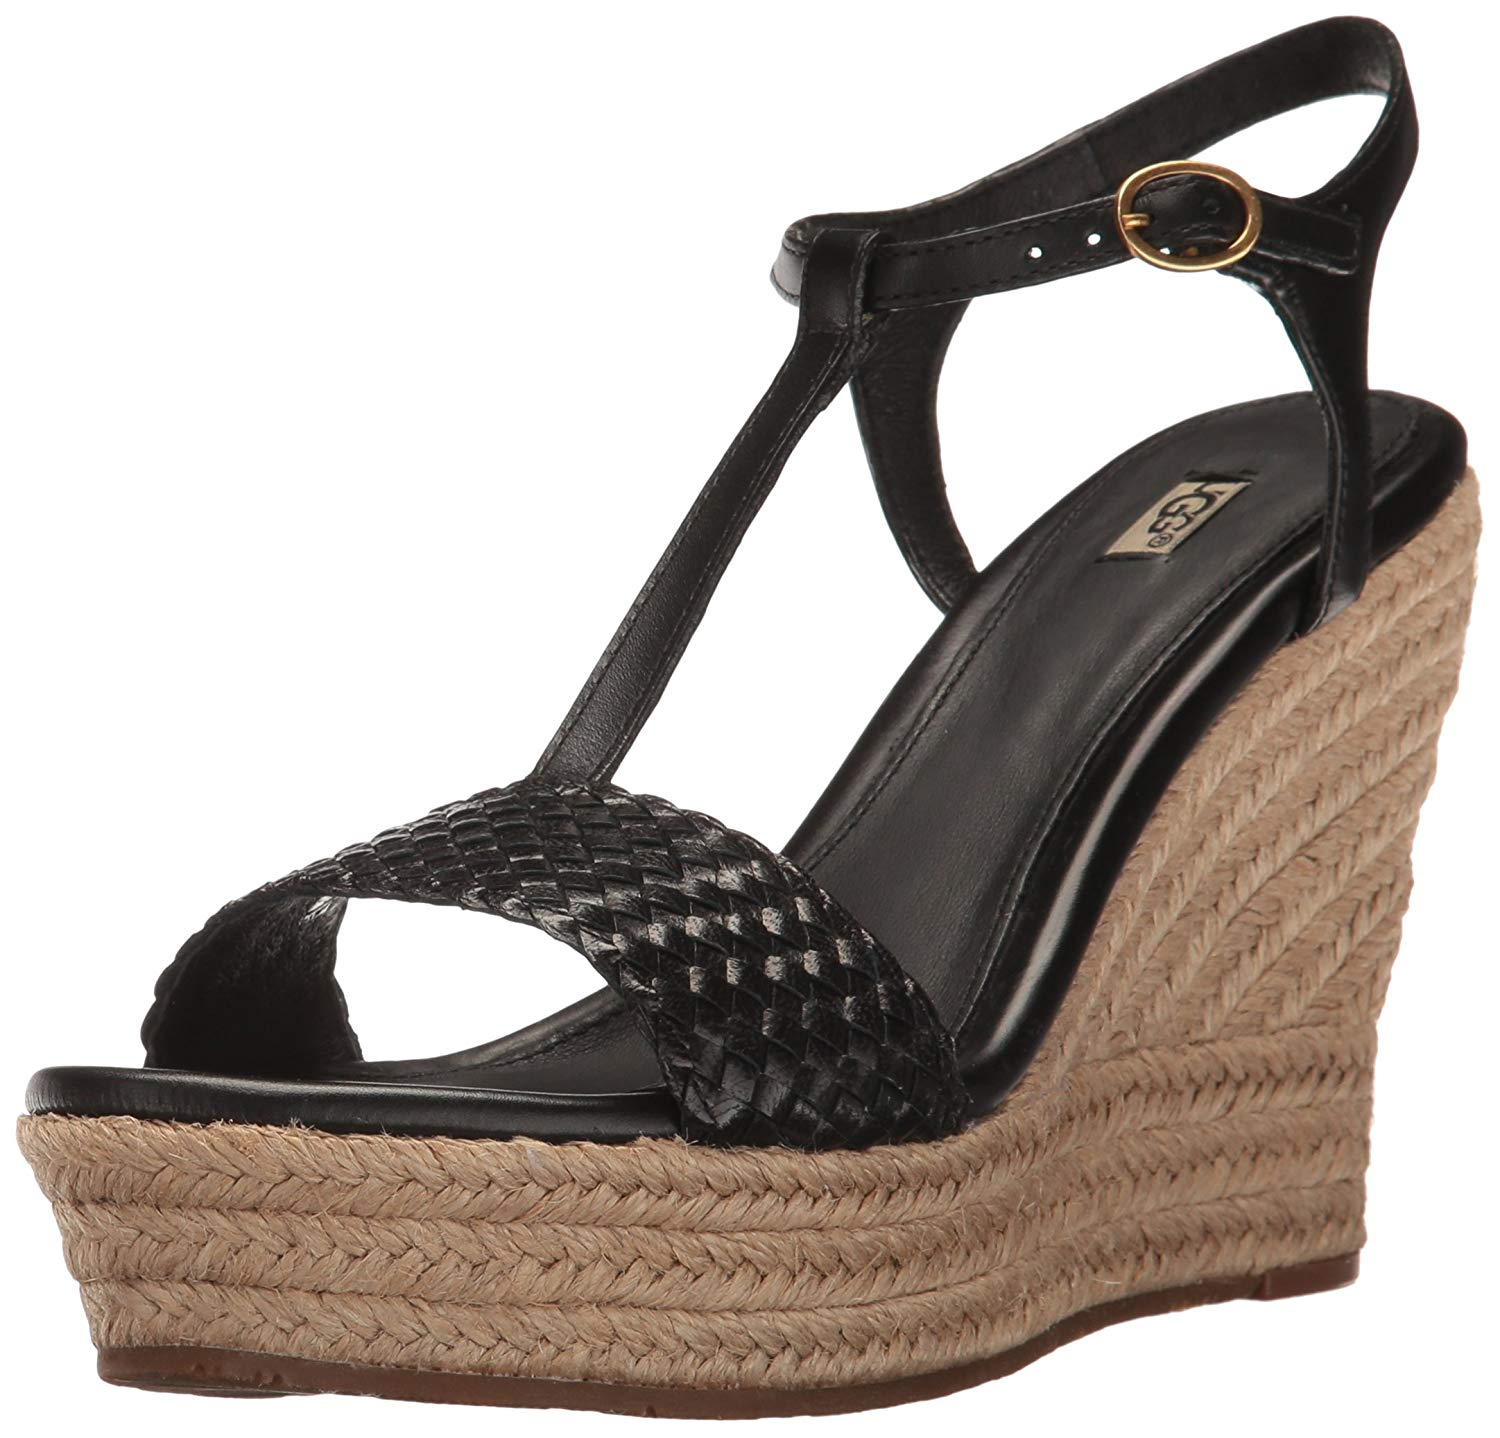 22fa81021d UGG Women's Fitchie II Wedge Sandal, Black, Size 11.0 US / 9 UK ...